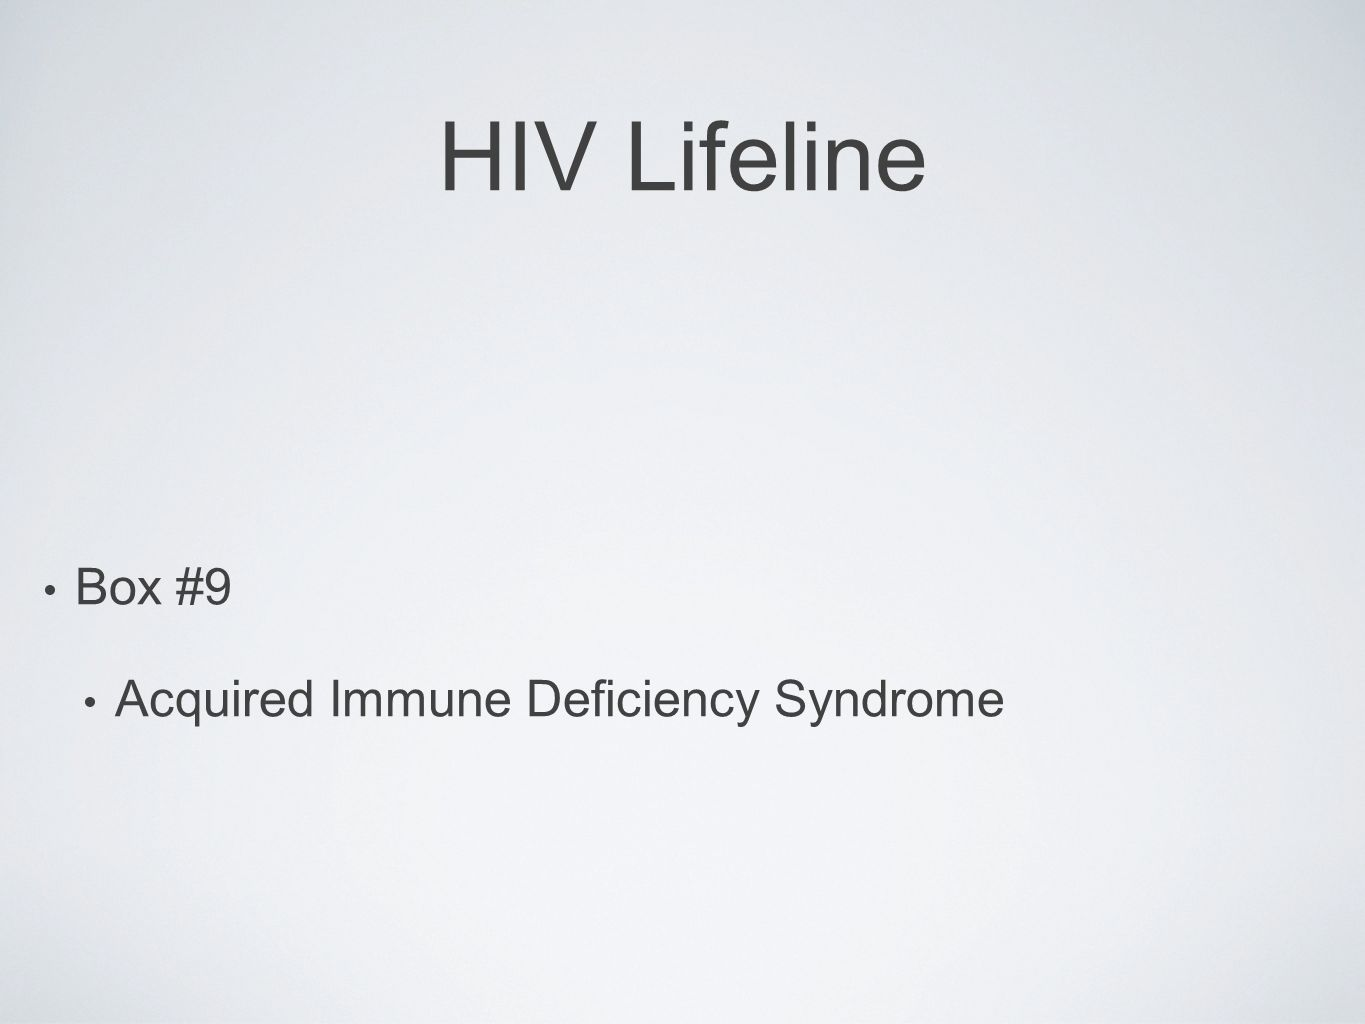 HIV Lifeline Box #9 Acquired Immune Deficiency Syndrome